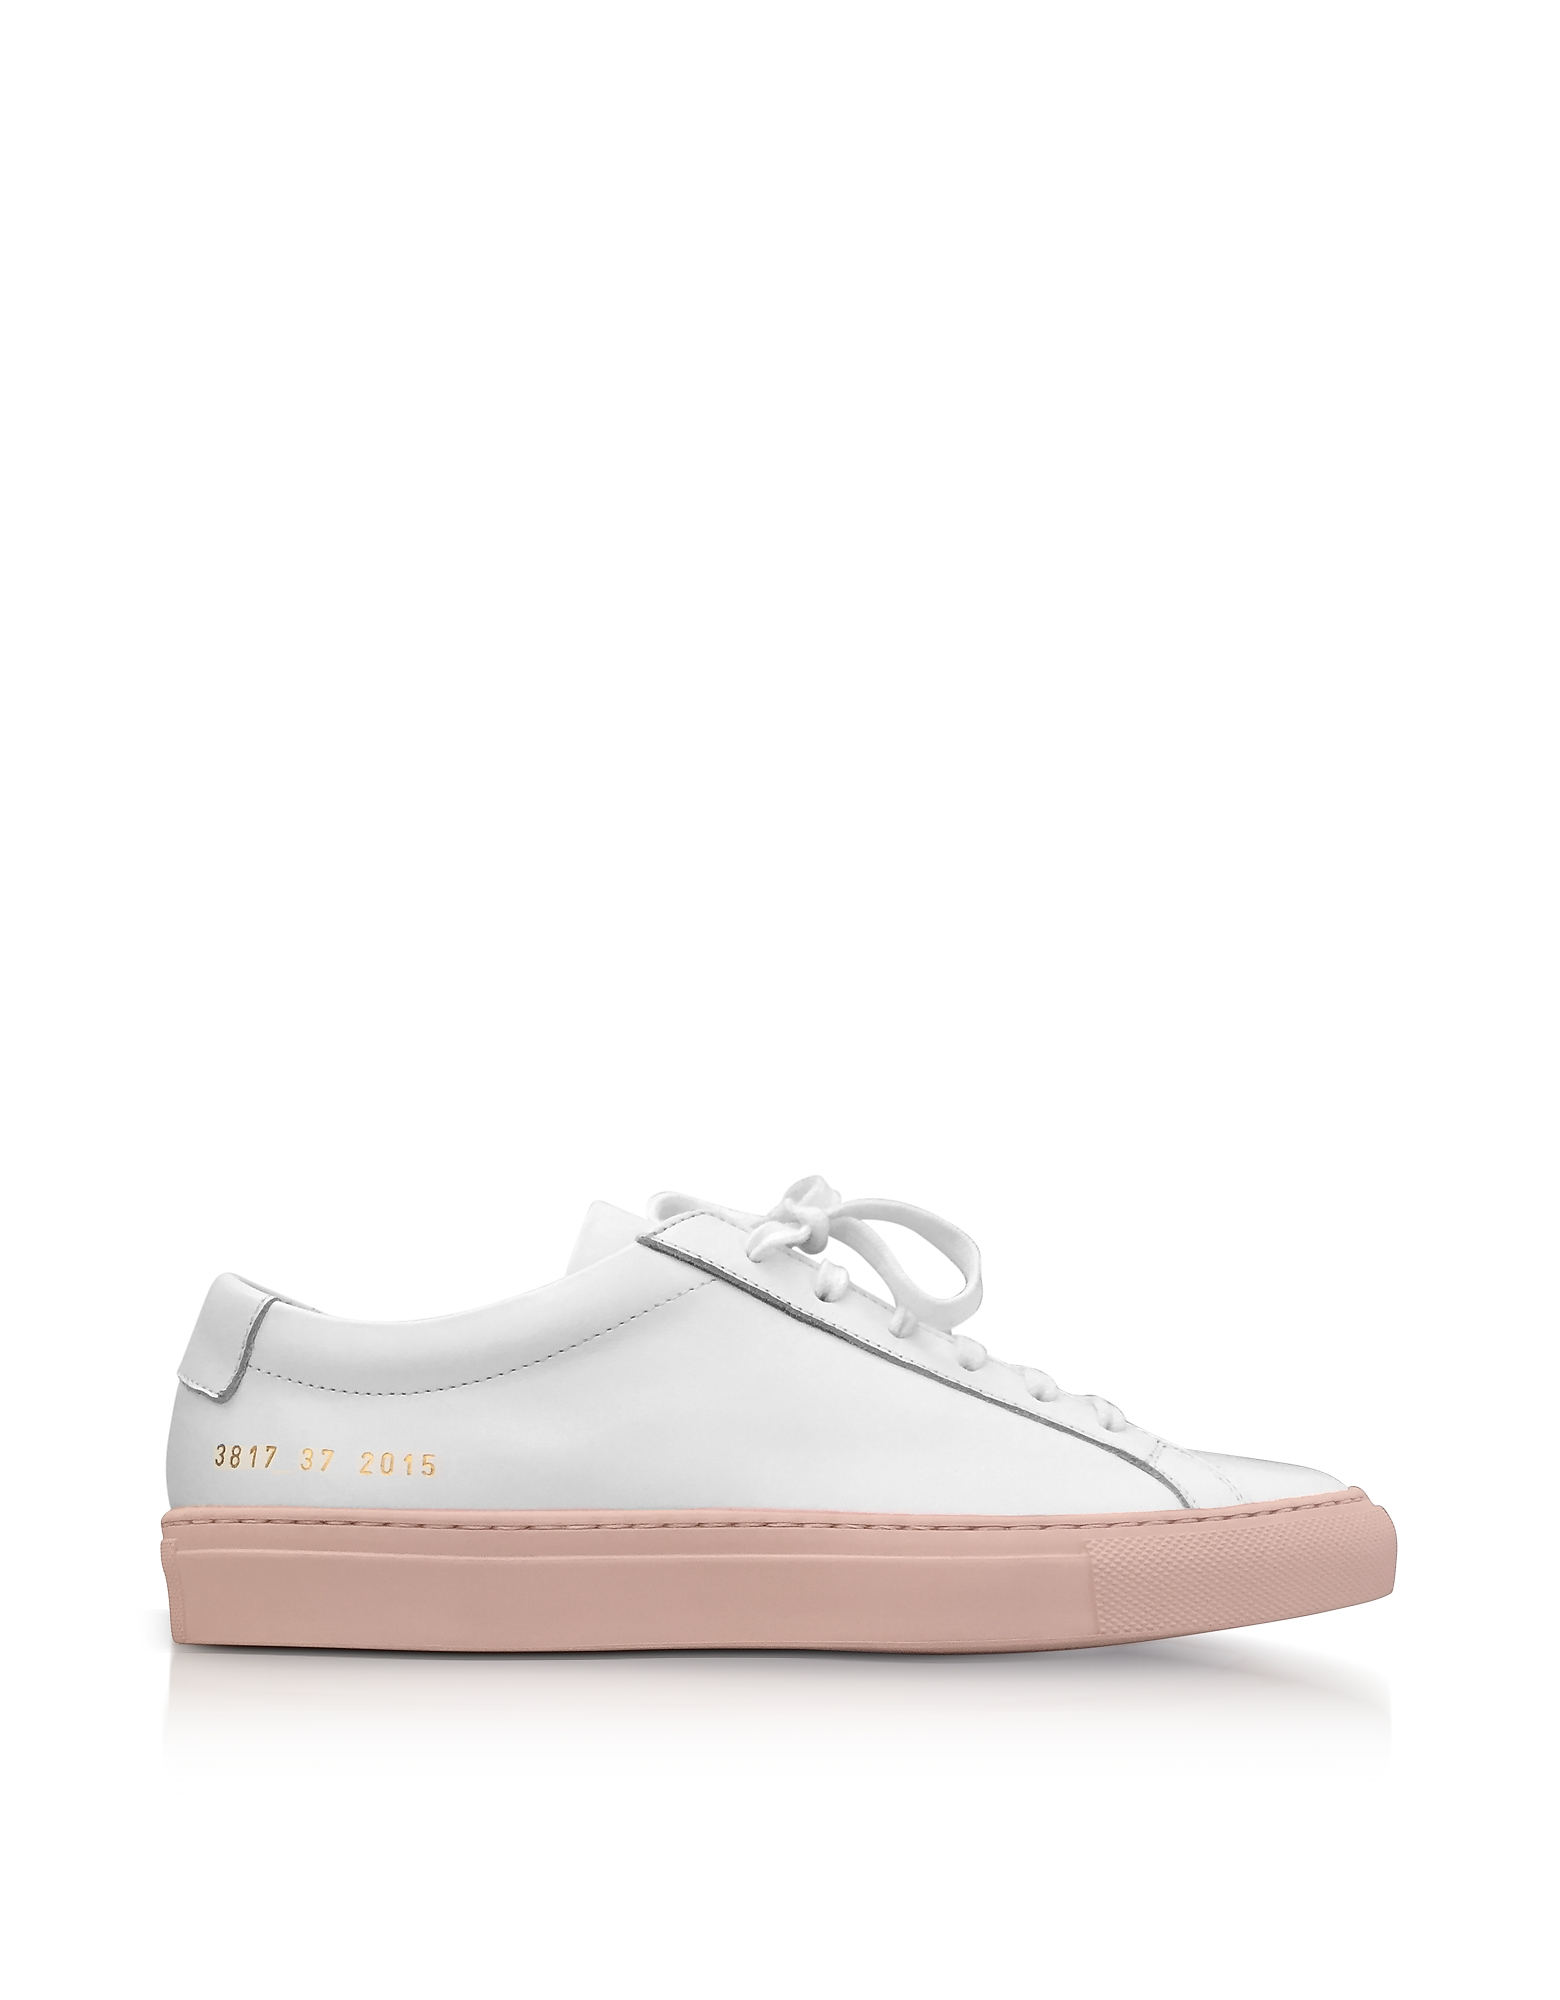 Common Projects Shoes, White Leather Achilles Low Top Men's Sneakers w/Blush Rubber Sole